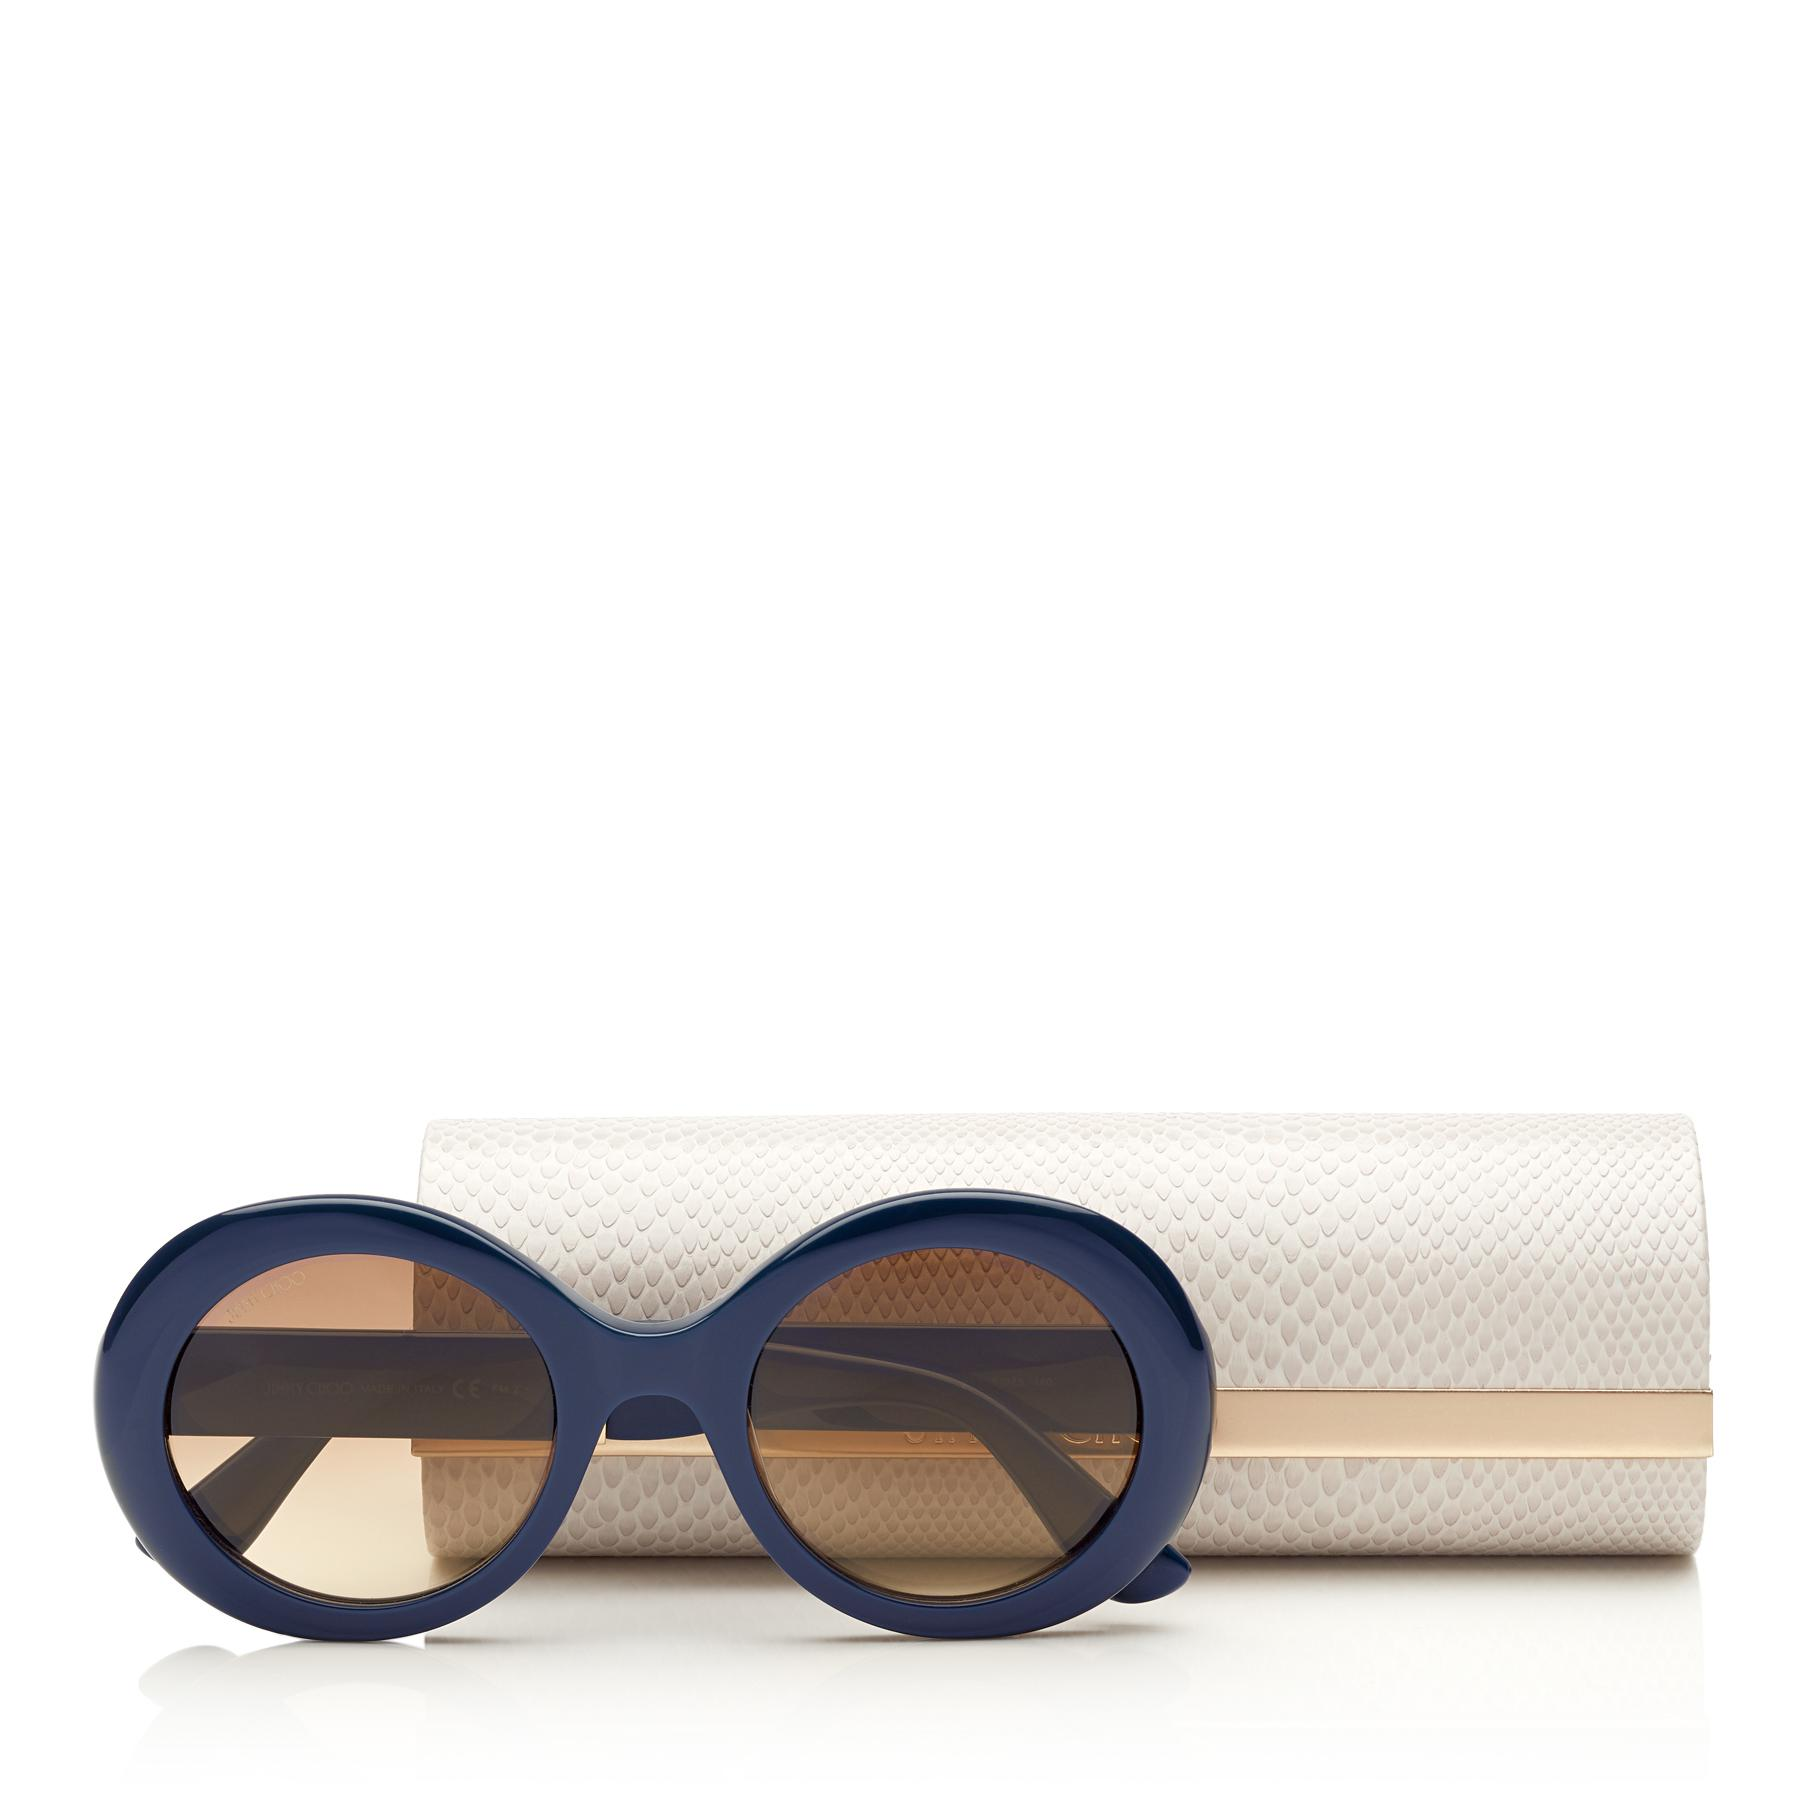 b056253f24f4 ... Wendy Blue Round Framed Sunglasses With Lurex Detailing - Lyst. View  fullscreen